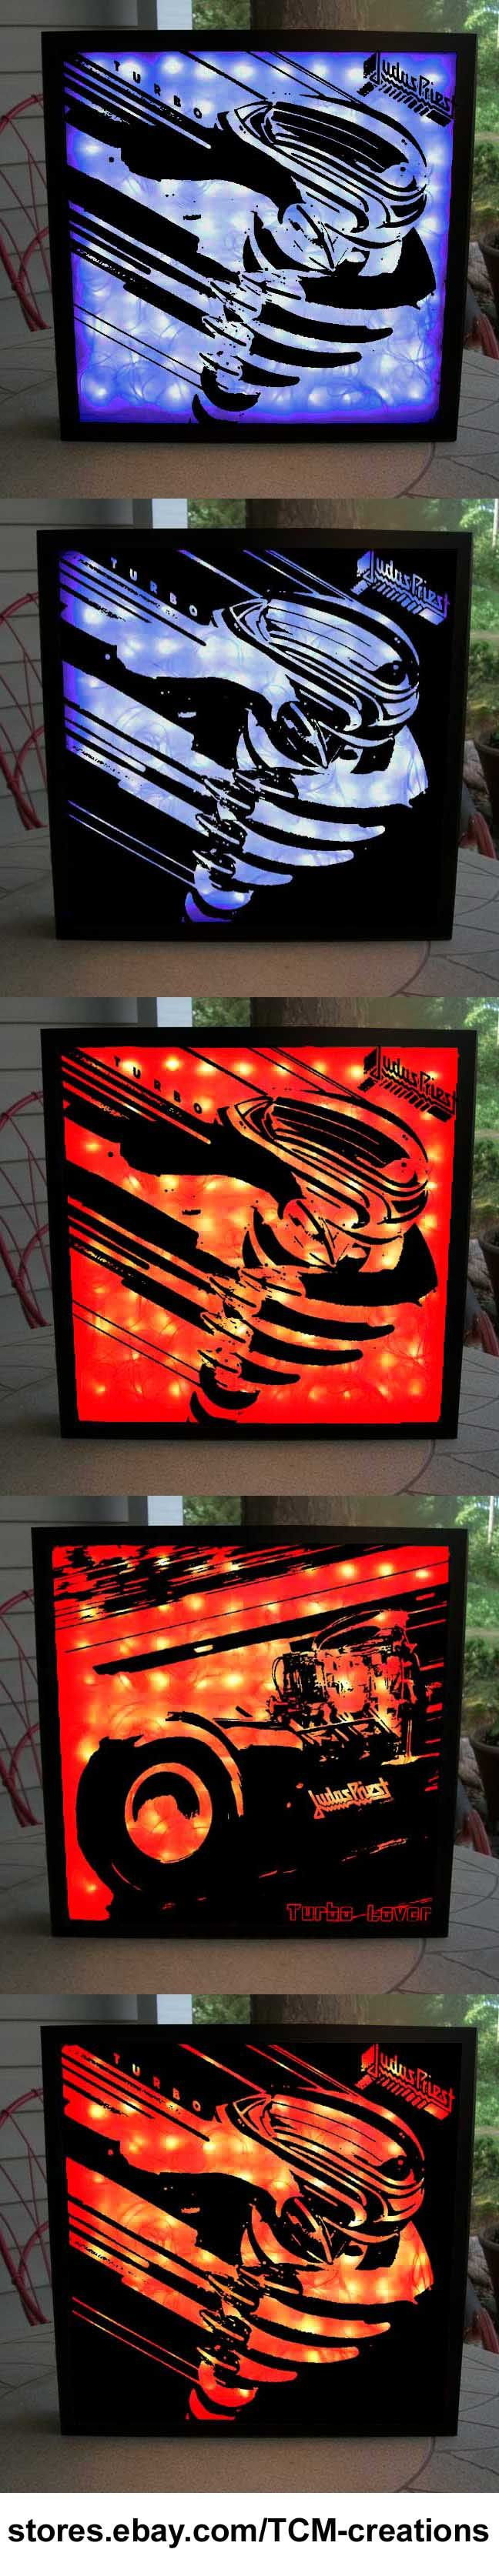 Judas Priest Shadow Boxes with LED lighting. Rocka Rolla, Sad Wings Of Destiny, Sin After Sin, Stained Class, Killing Machine, British Steel, Point Of Entry, Screaming For Vengeance, Defenders Of The Faith, Turbo, Ram It Down, Painkiller, Jugulator, Demolition, Angel Of Retribution, Nostradamus, Redeemer Of Souls, Unleashed In The East, Priest... Live!, 98 Live Meltdown, Live In London, A Touch Of Evil... Live, Battle Cry, Rob Halford, Glenn Tipton, K.K. Downing.